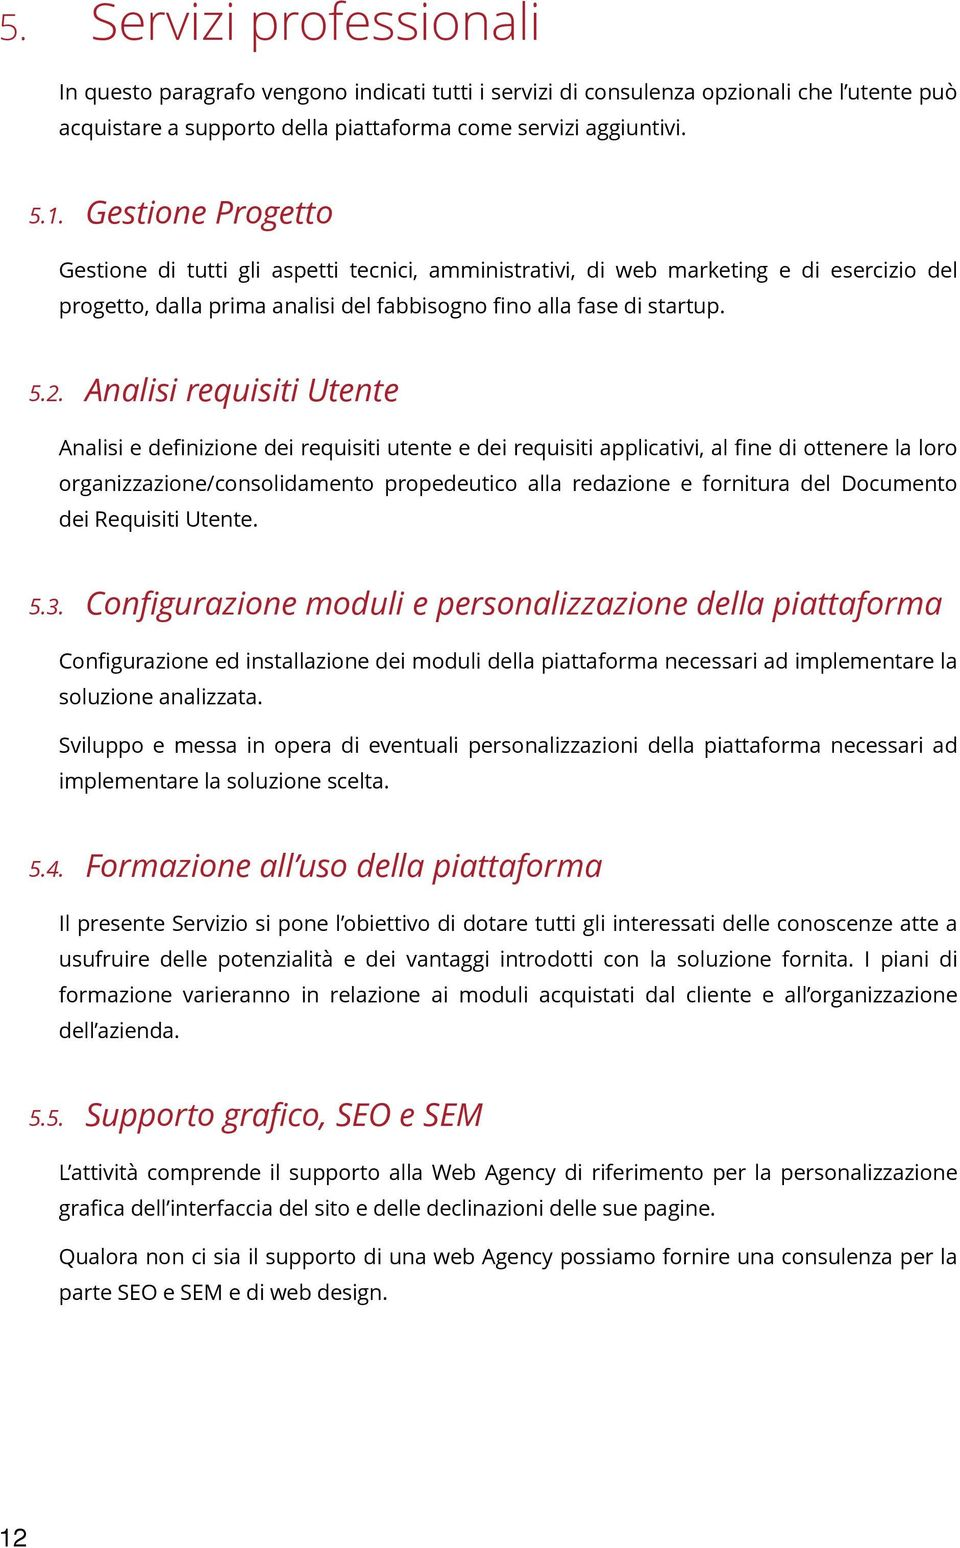 Analisi requisiti Utente Analisi e definizine dei requisiti utente e dei requisiti applicativi, al fine di ttenere la lr rganizzazine/cnslidament prpedeutic alla redazine e frnitura del Dcument dei